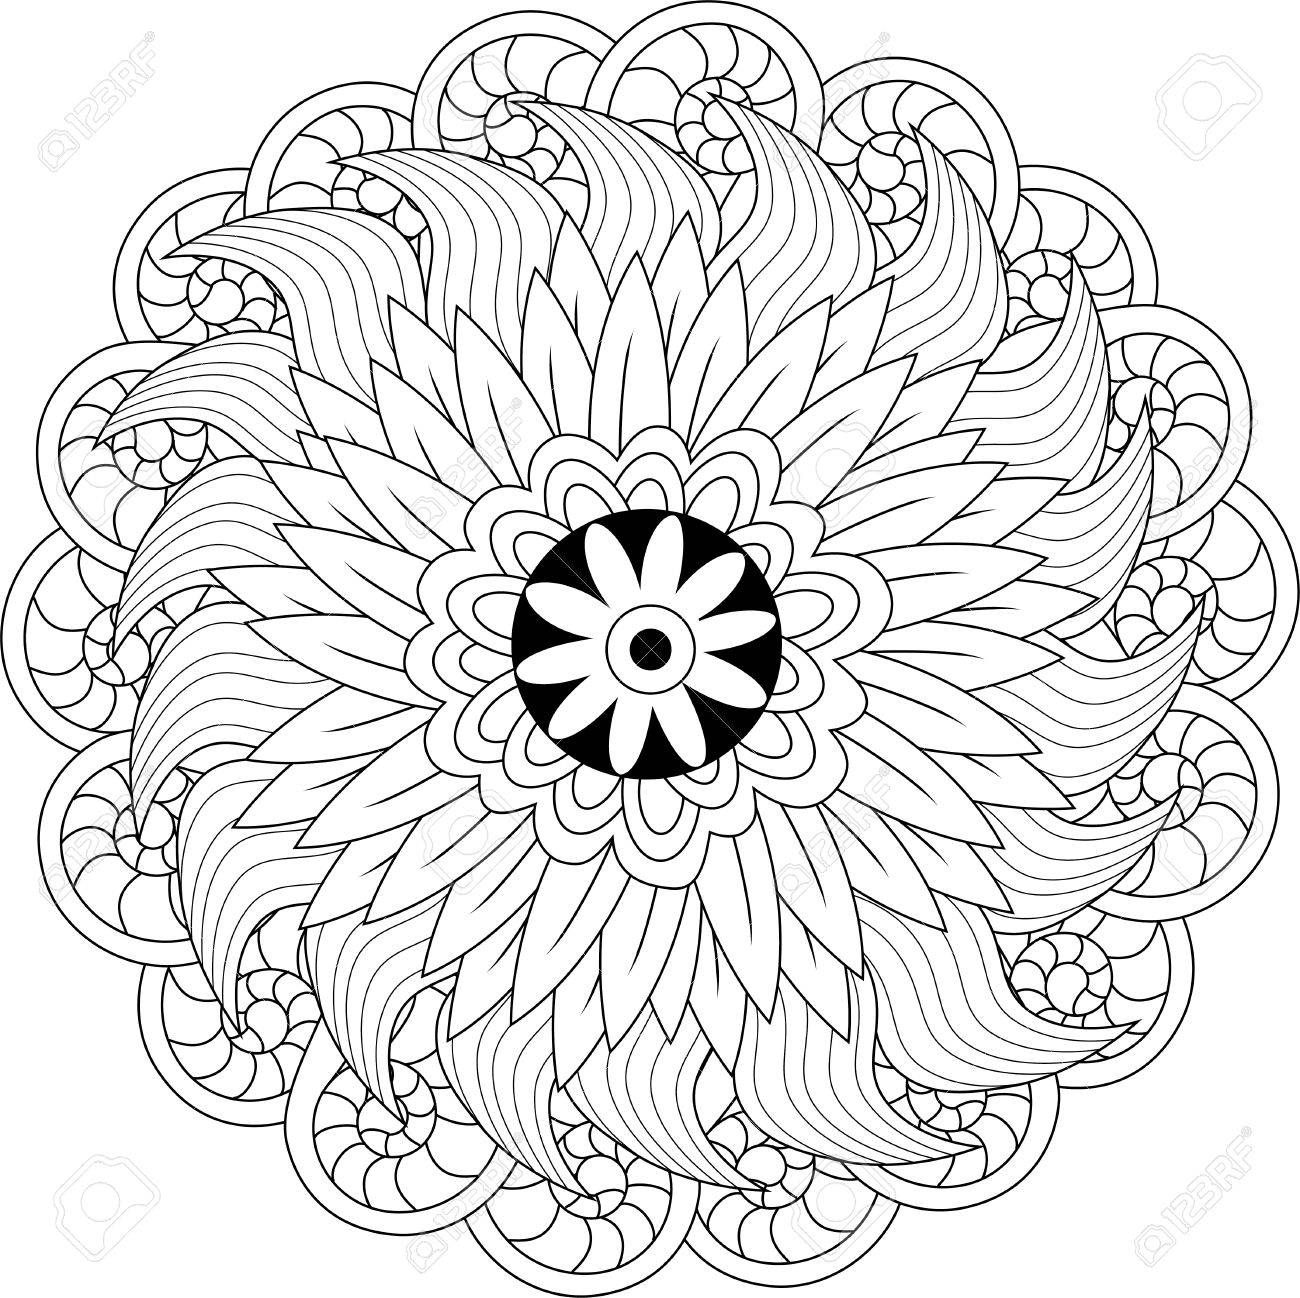 Black And White Floral Pattern For Coloring Book In Doodle Style. Vector  Elements For Design